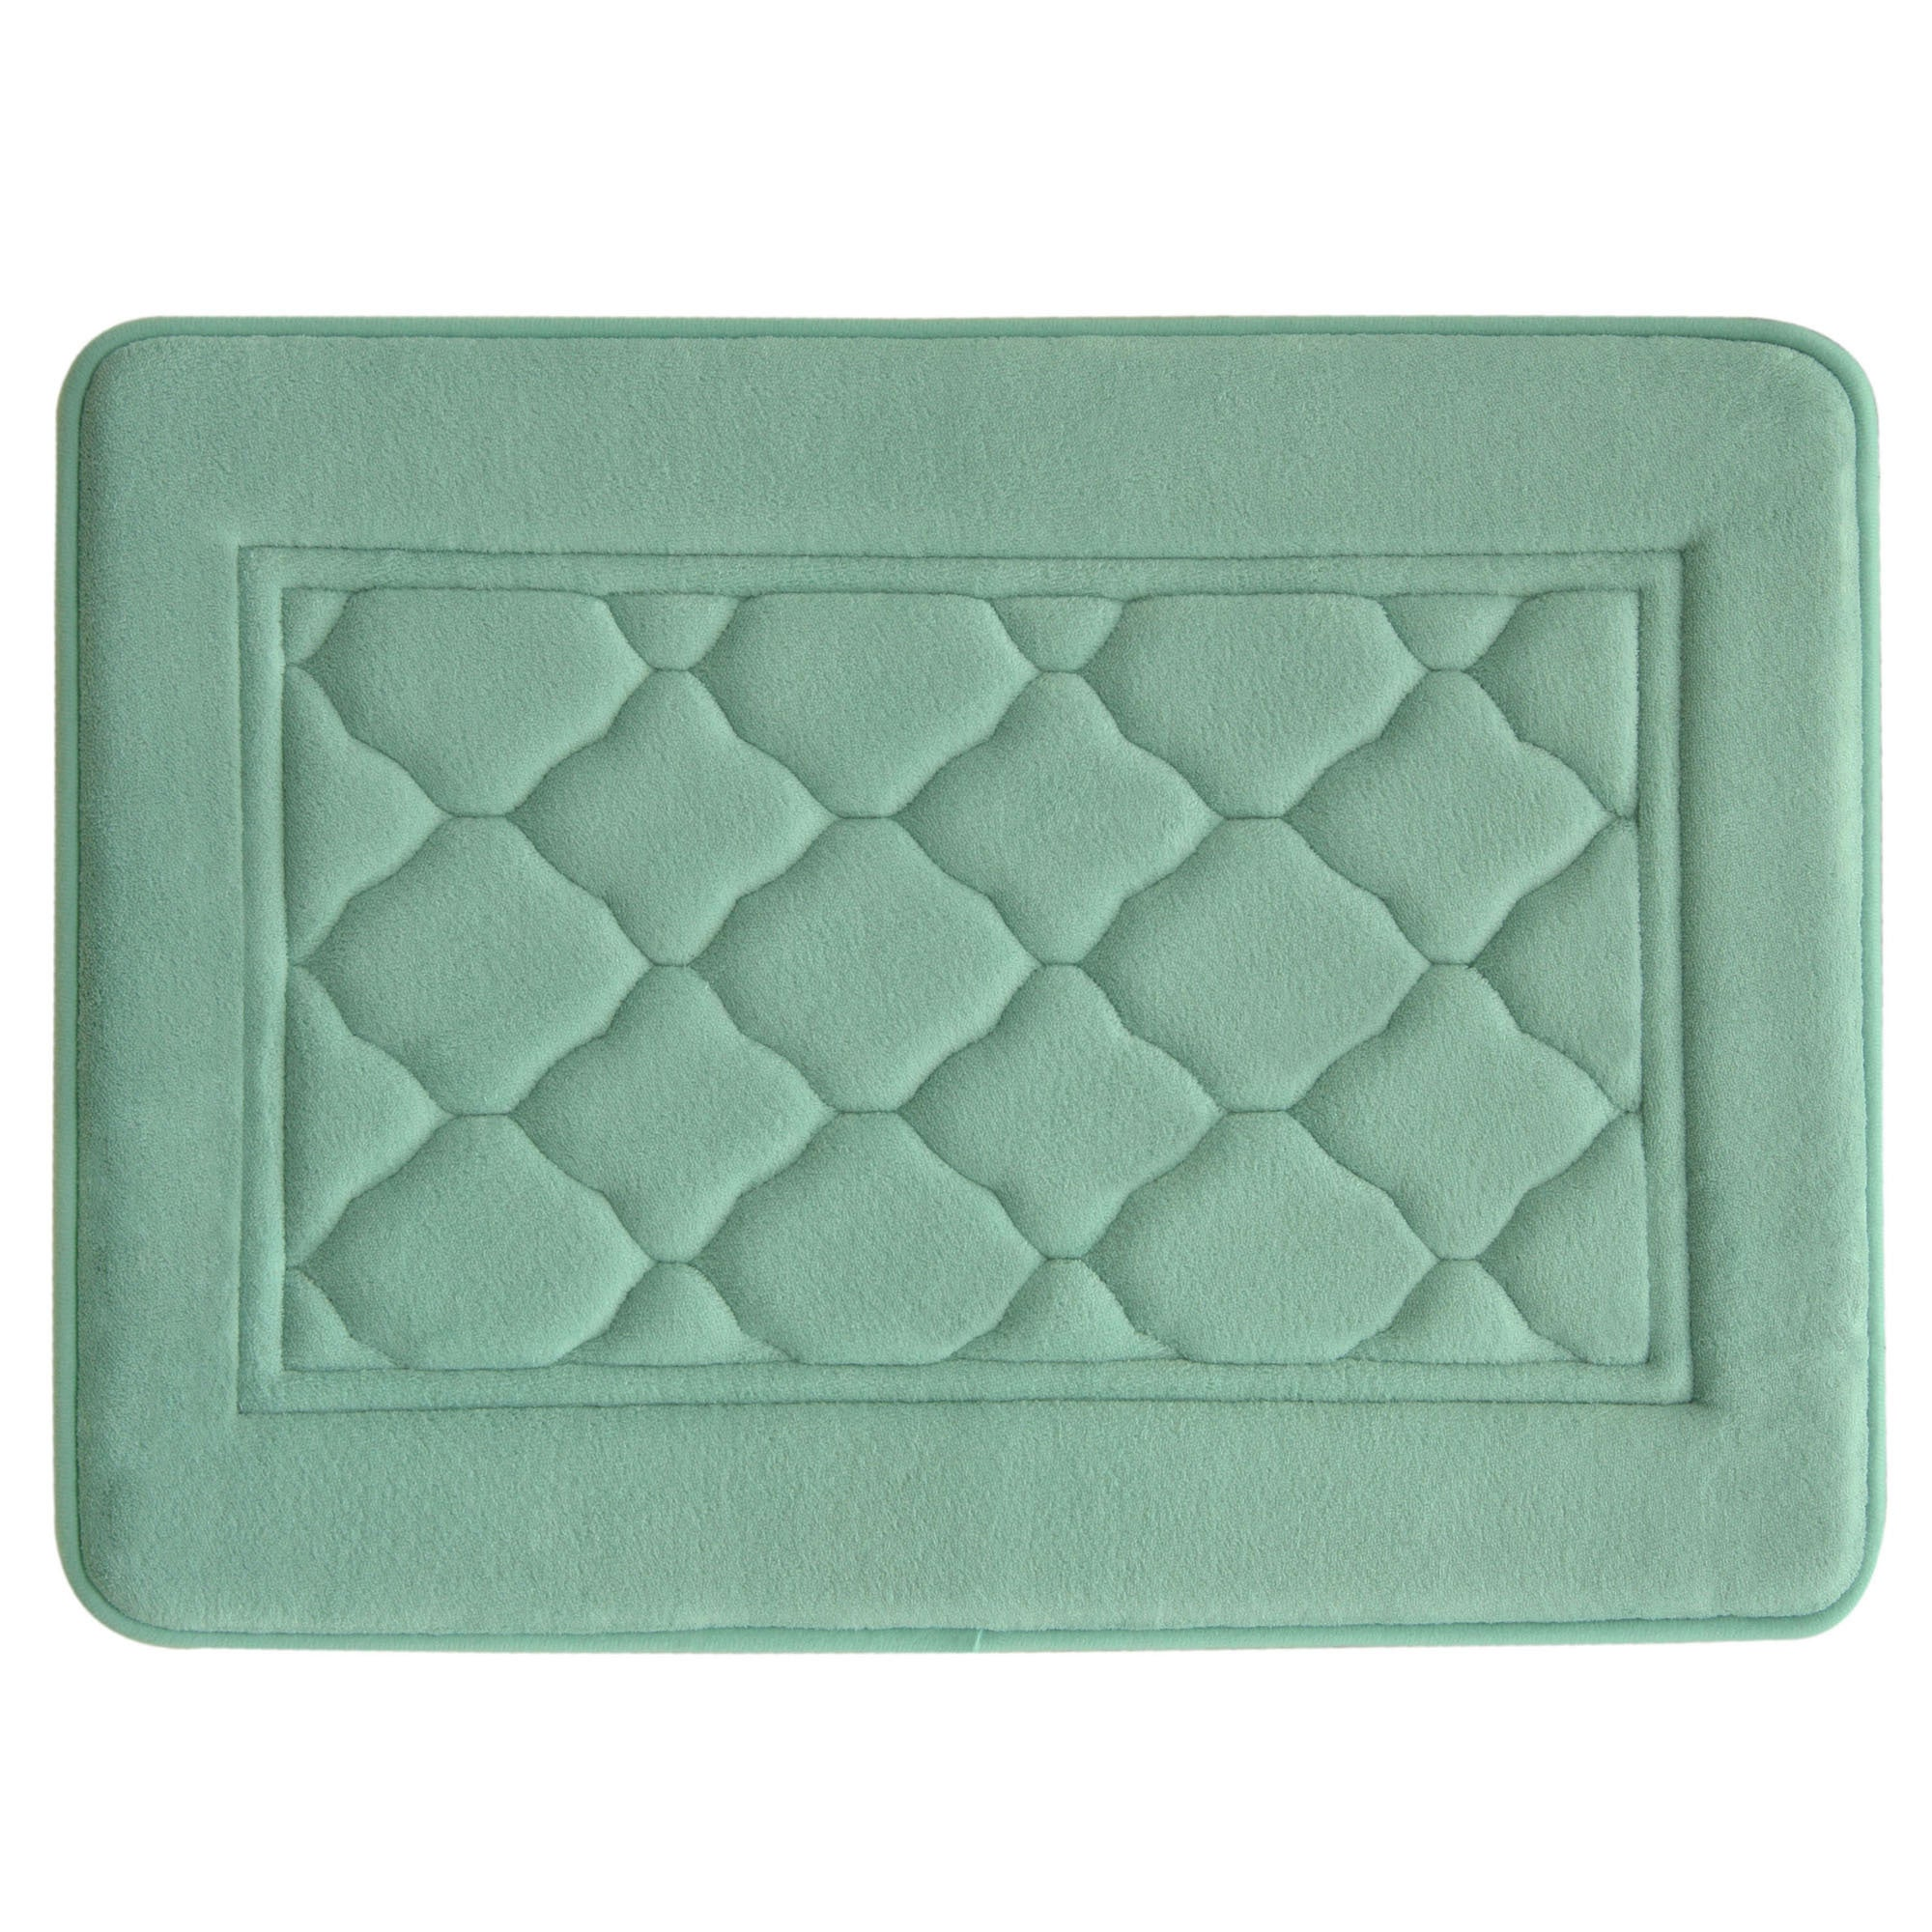 residence within orange to concept decor rug bathroom piece your green foam accessories applied mat memory gorgeous with vivacious bath interesting sets